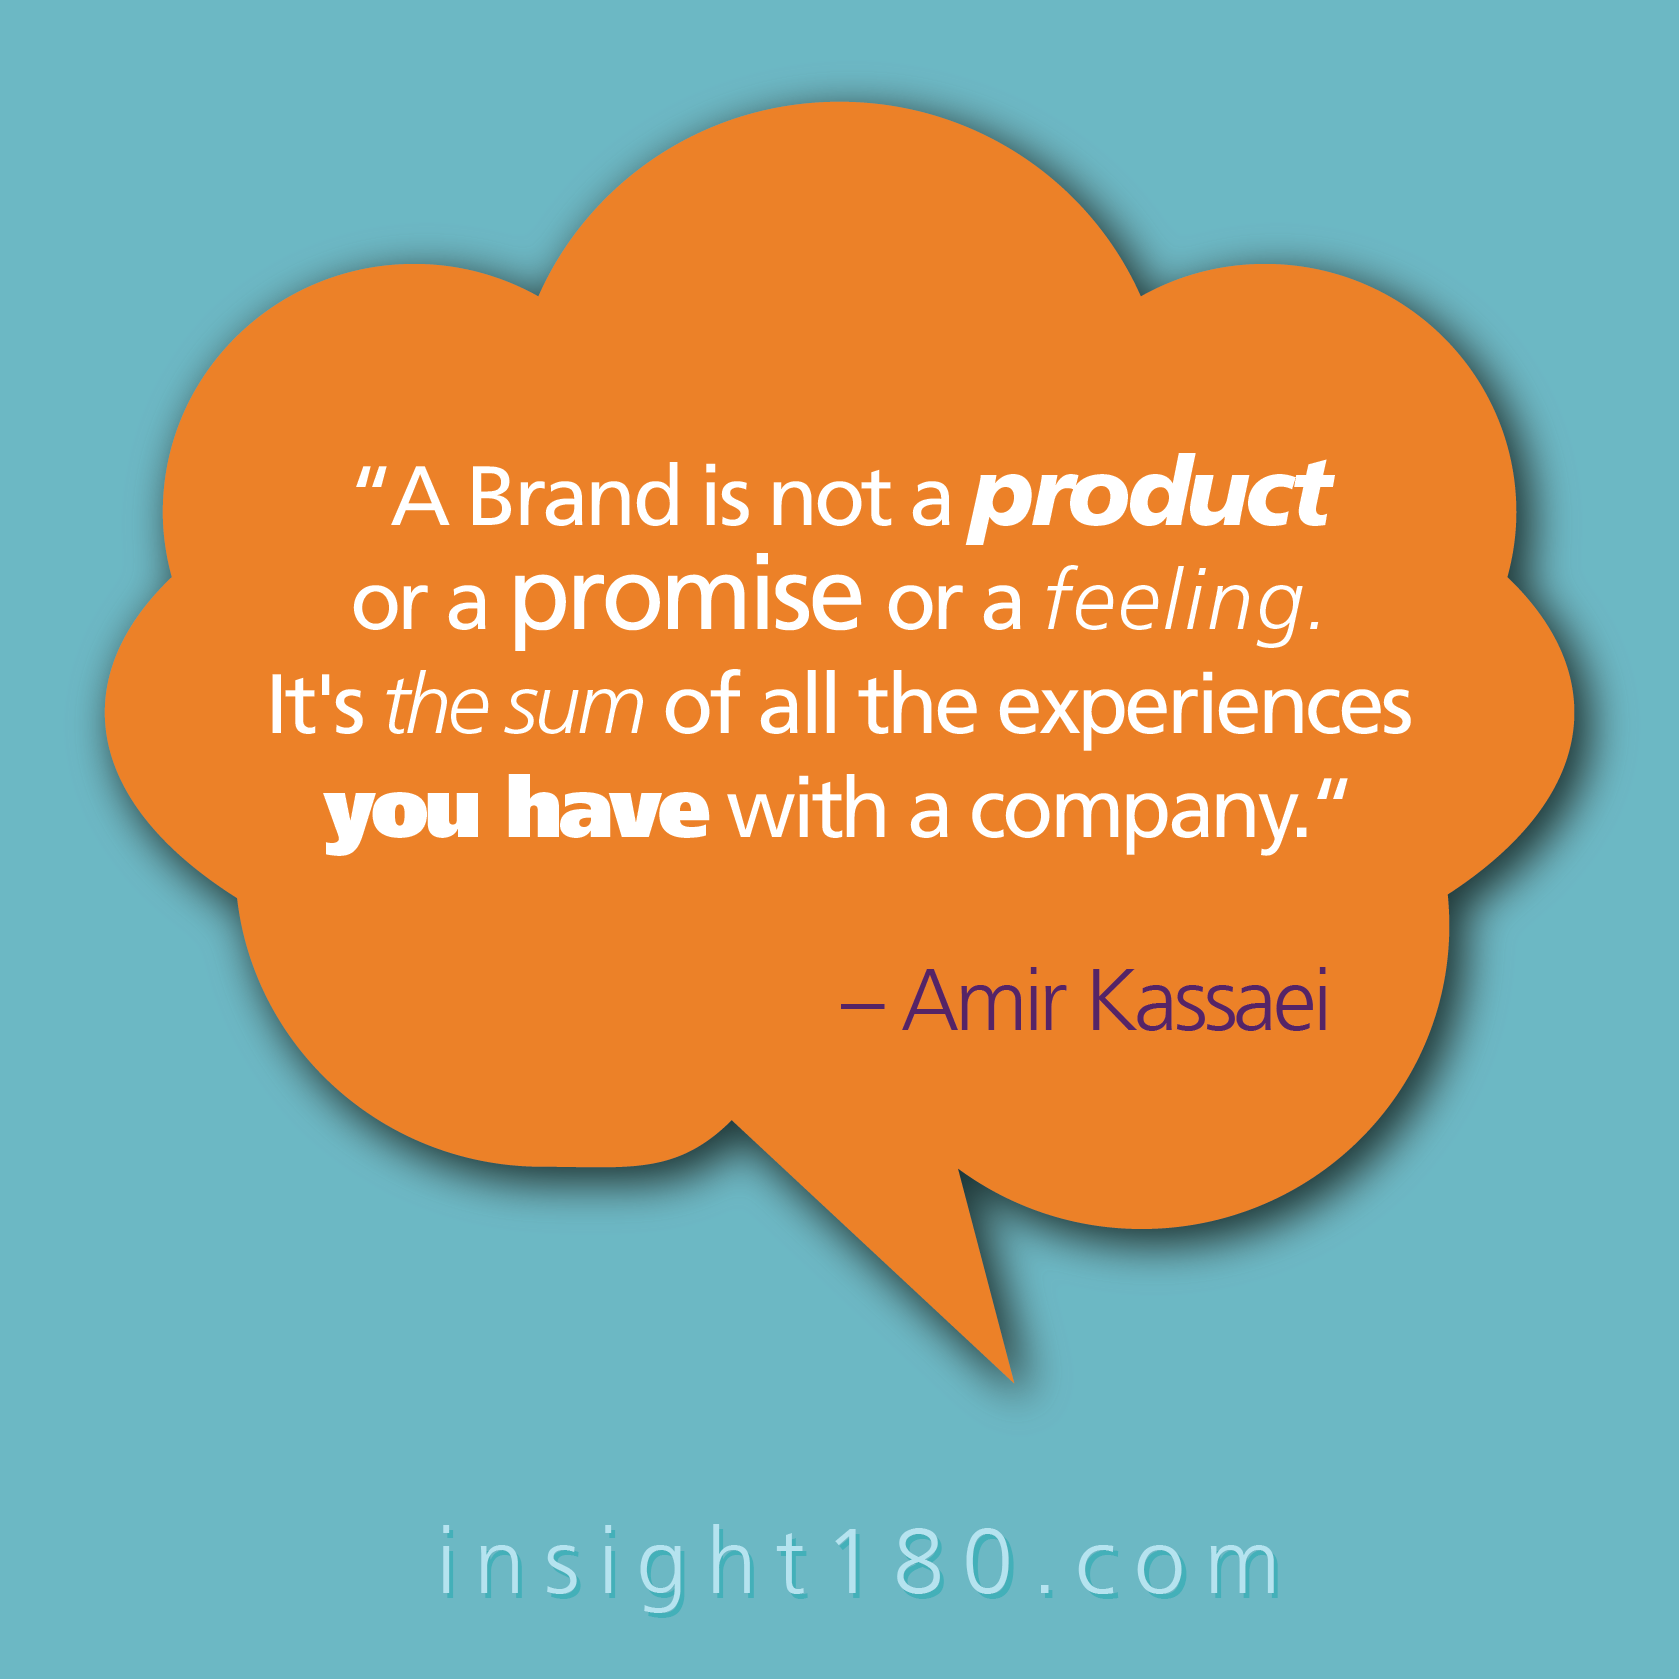 Insight180 Quotes On Branding A Brand Is Not A Product Or A Promise Or A Feeling It S The Sum Of All The Marketing Quotes Quality Quotes Business Quotes